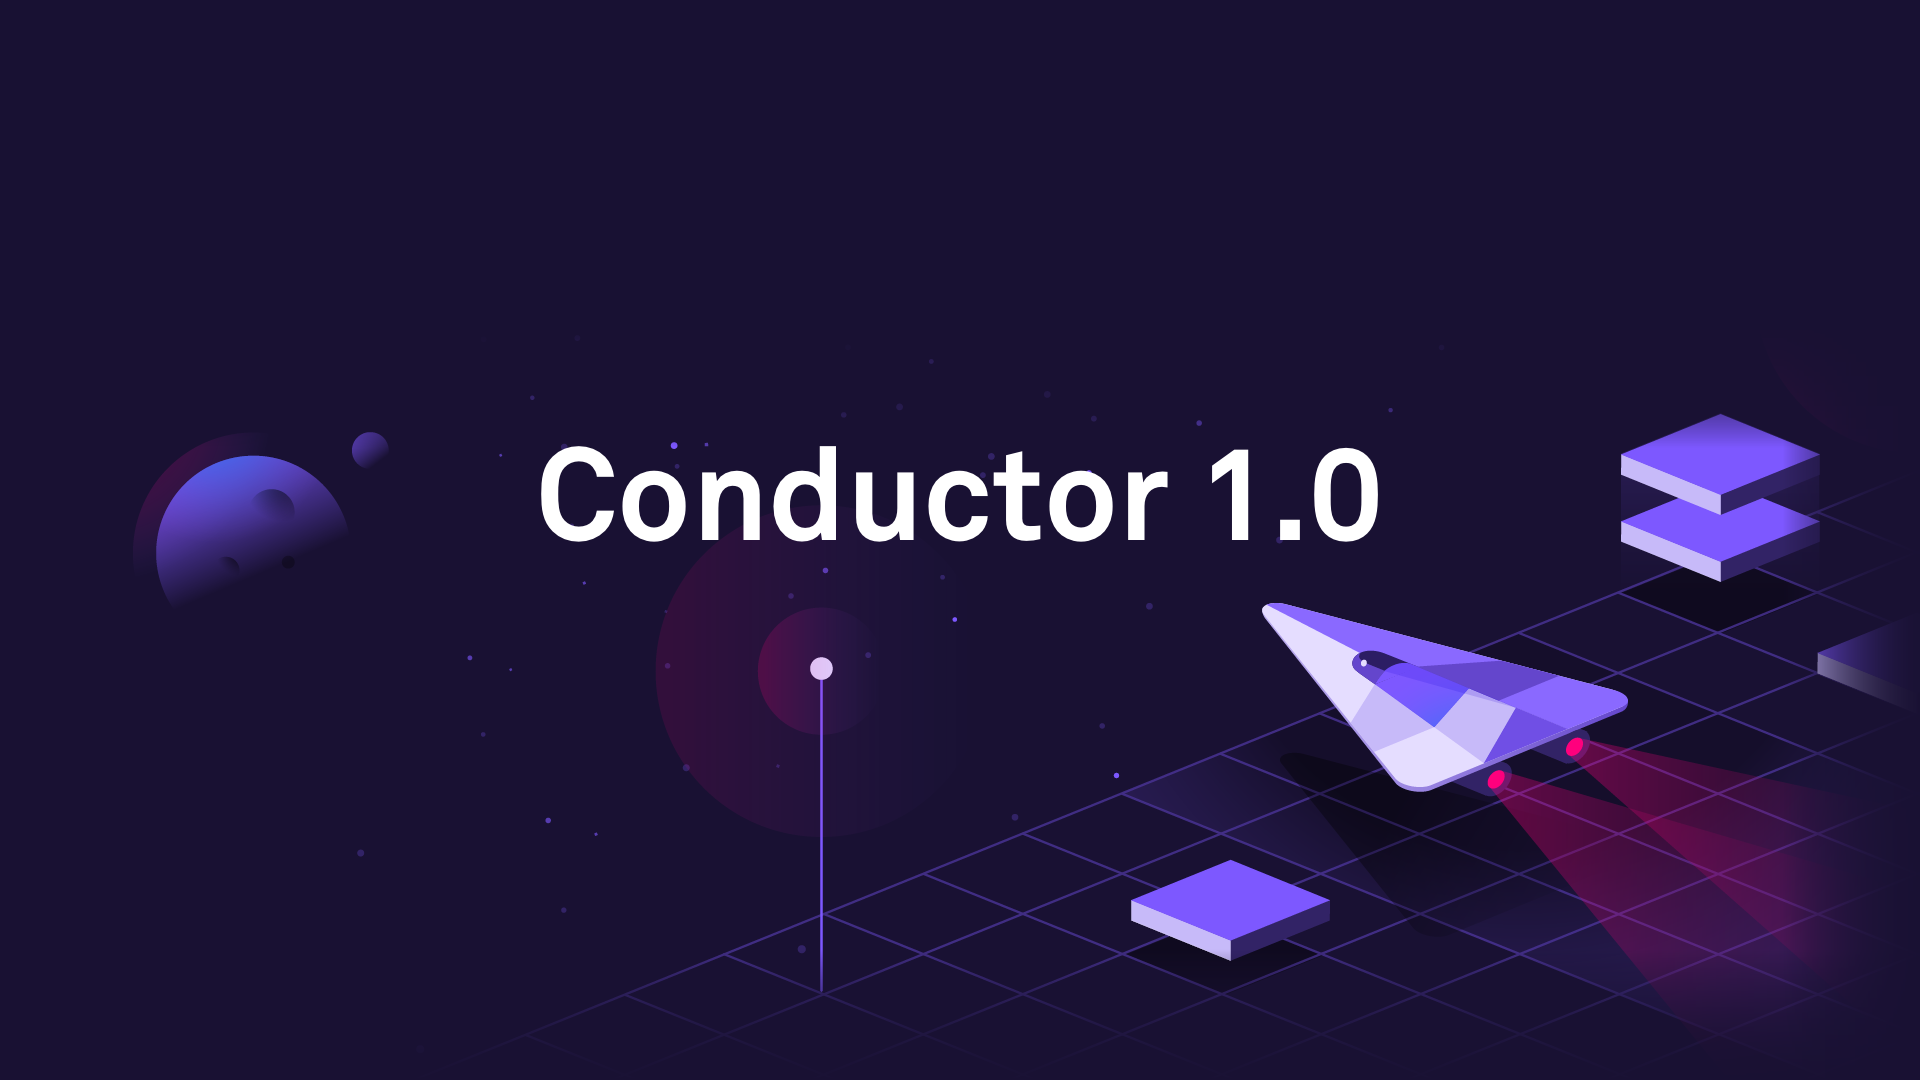 Introducing Conductor